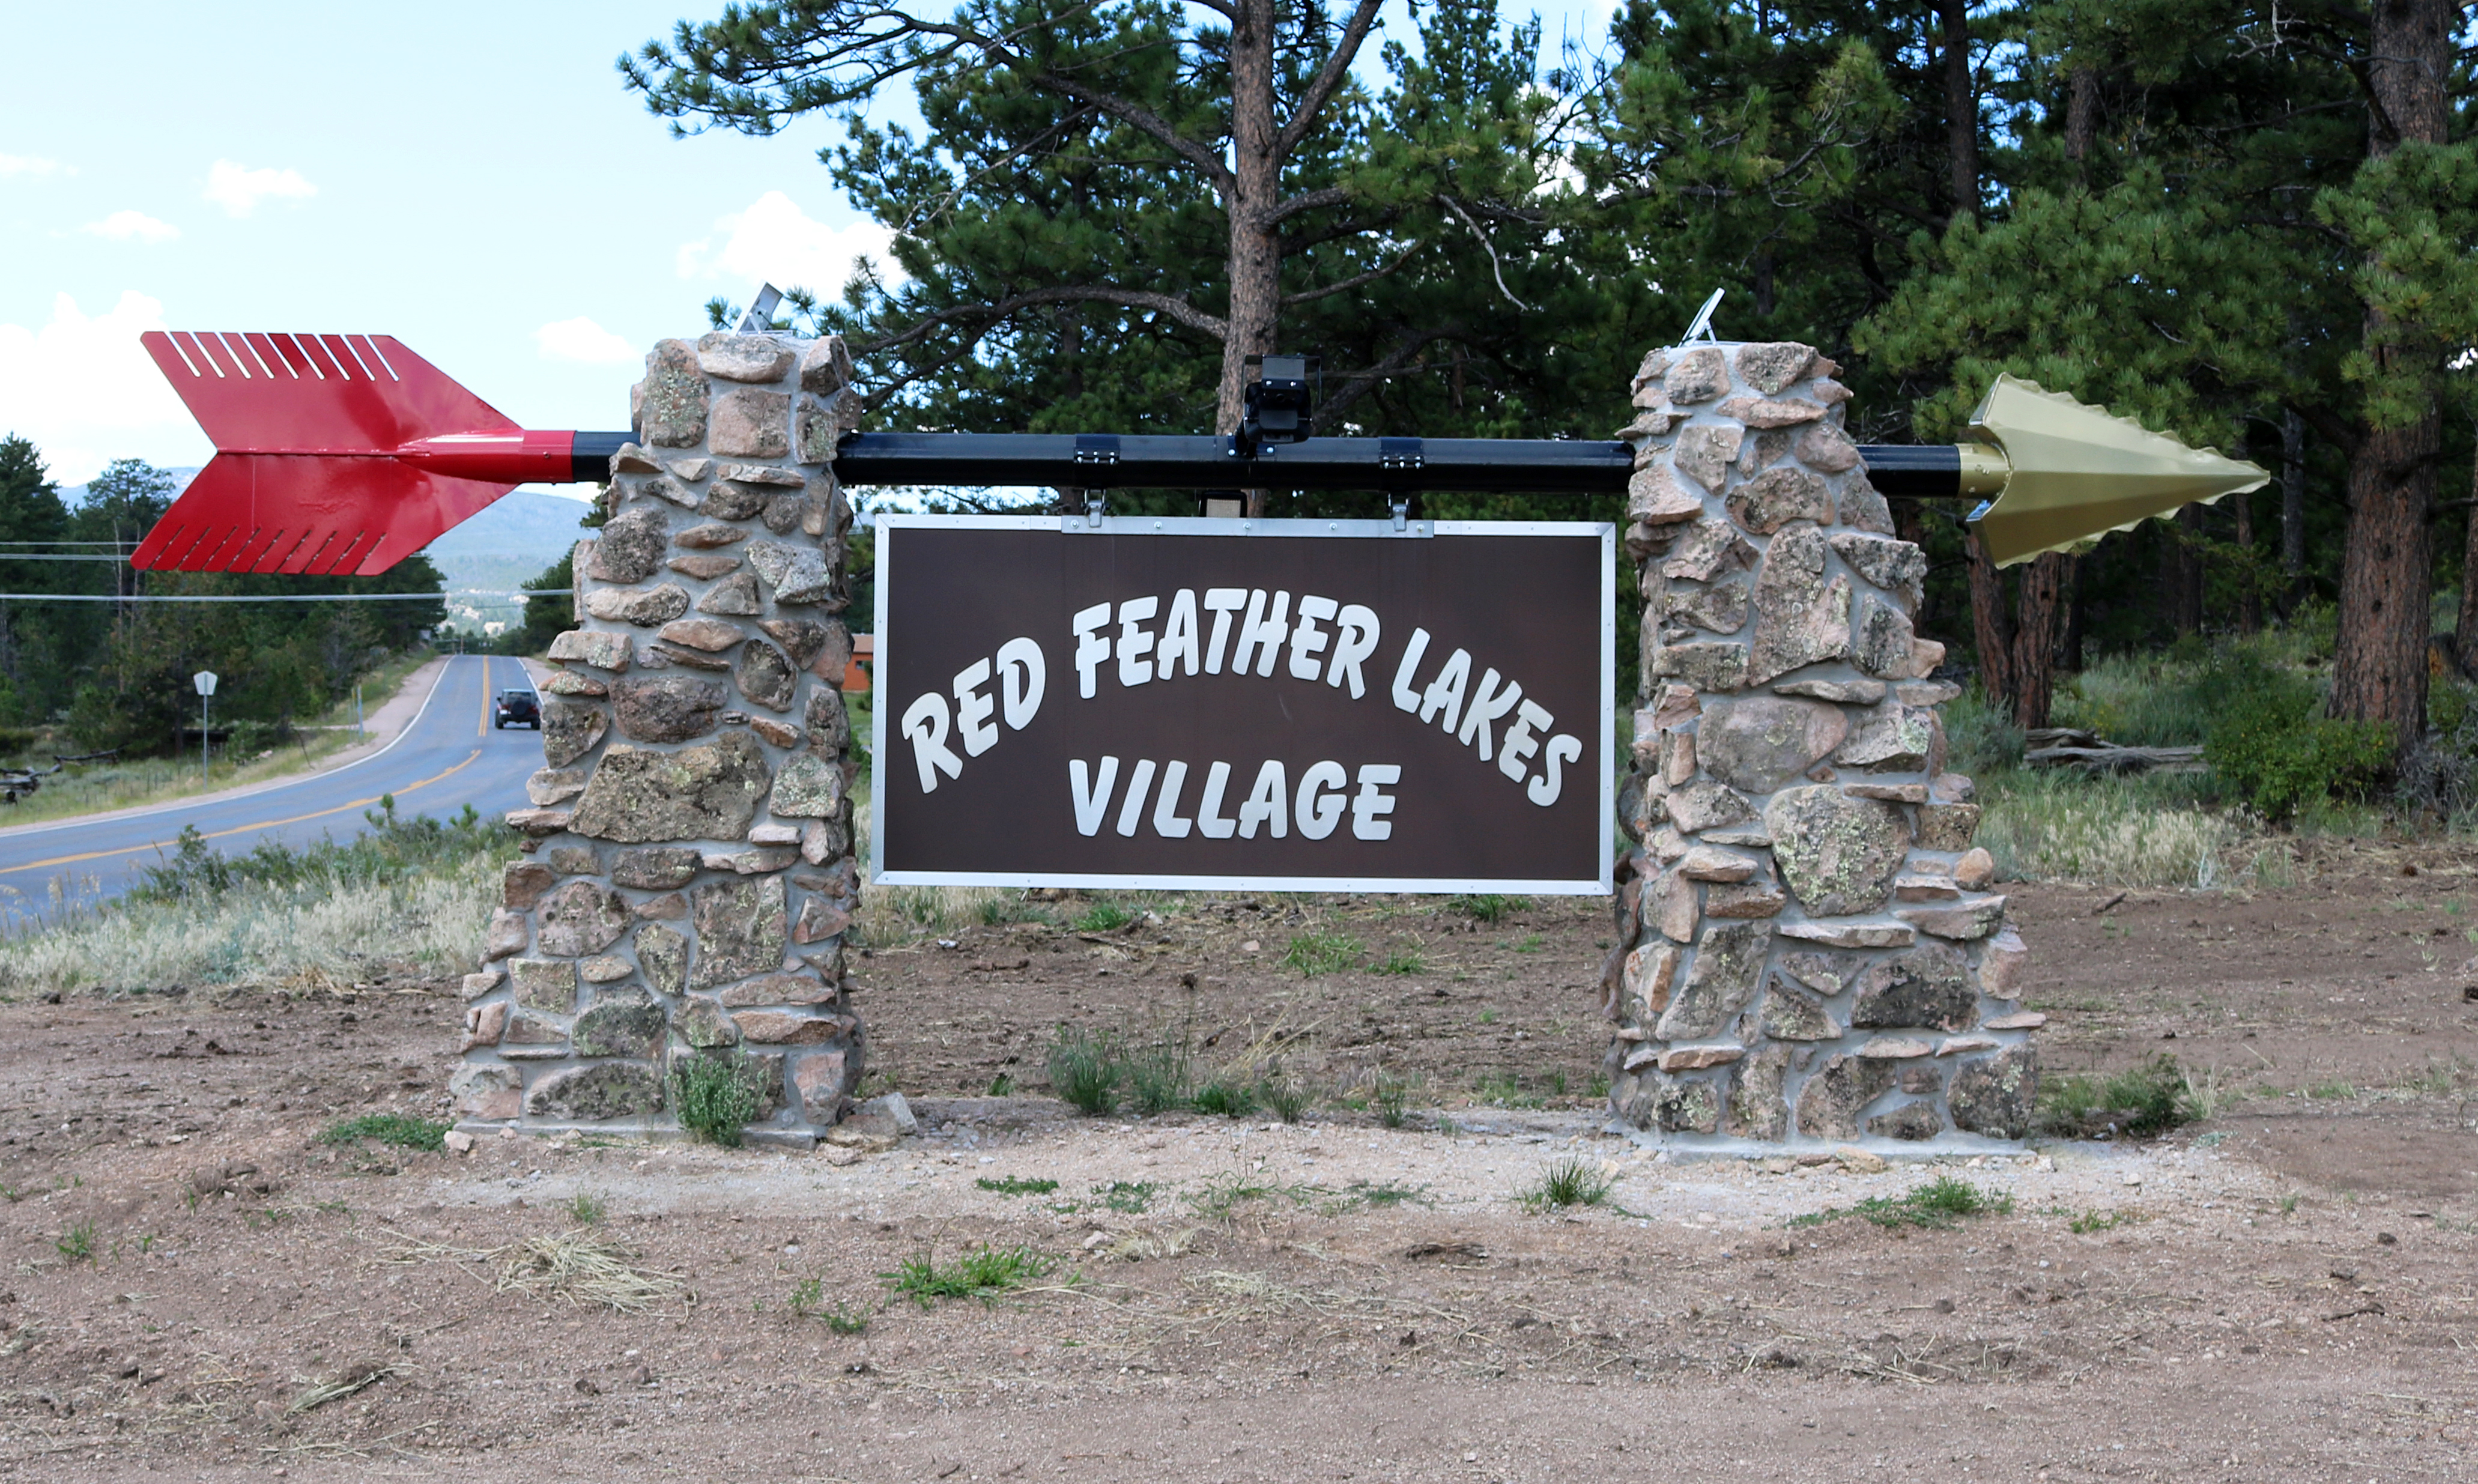 red feather lakes asian singles Red feather lakes is a census-designated place (cdp) in larimer county, colorado, united statesthe population was 525 at the 2000 census the red feather lakes post office has the zip code 80545 located in the rocky mountains northwest of fort collins, this is a rustic mountain village surrounded by the roosevelt national forest.